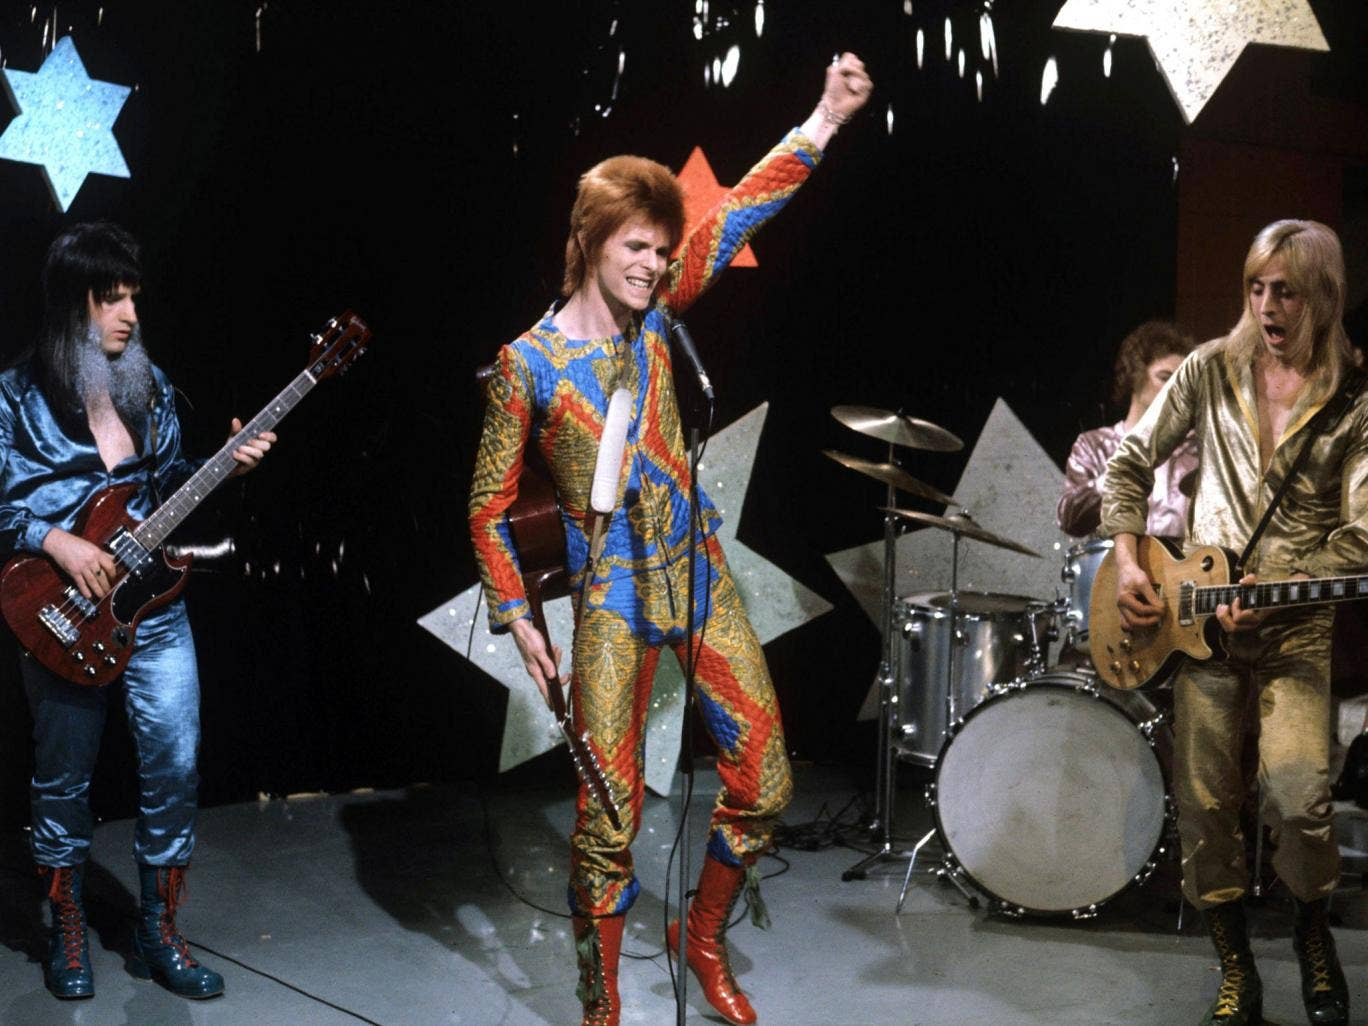 Ziggy and the Spiders: Bolder, left, with David Bowie, Woody Woodmansey and Mick Ronson in 1972